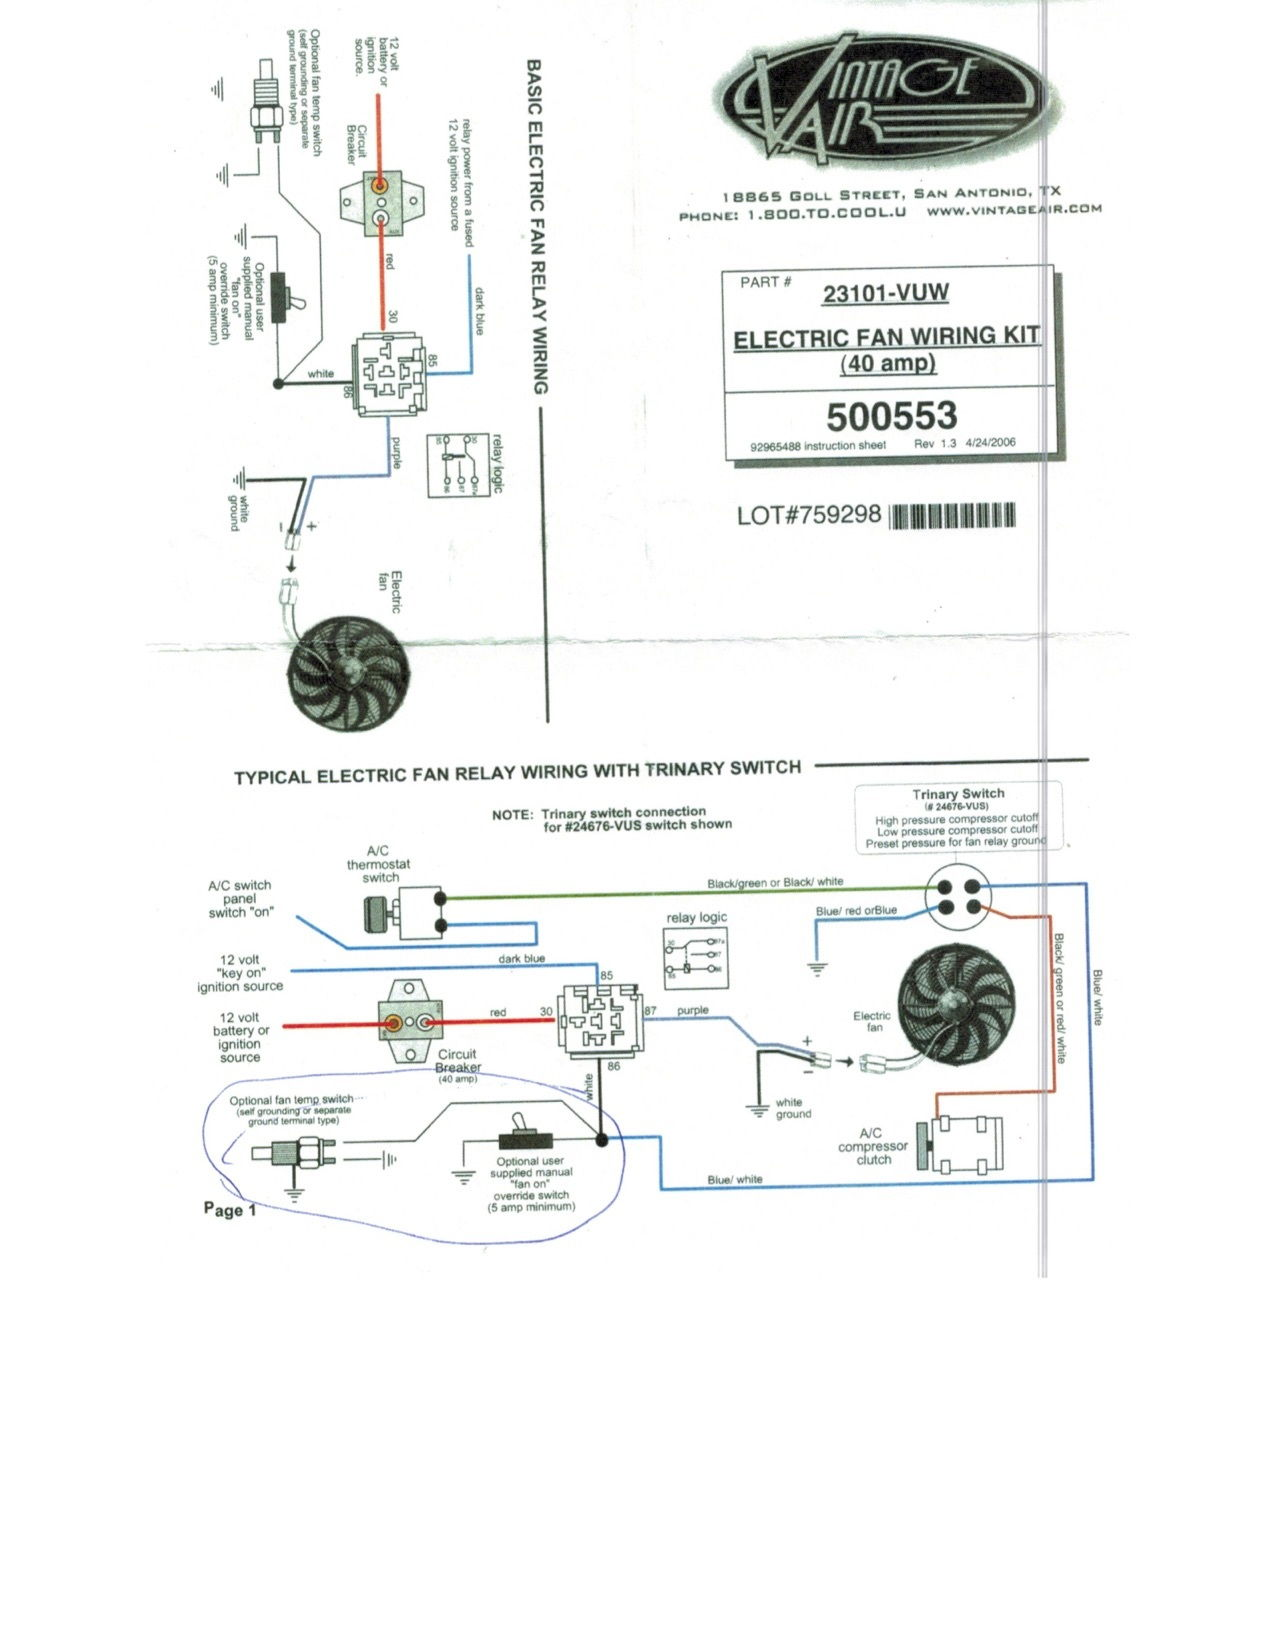 hight resolution of fan wiring questions for ls1 with american autowire vintage air diagram vintage air wiring diagram